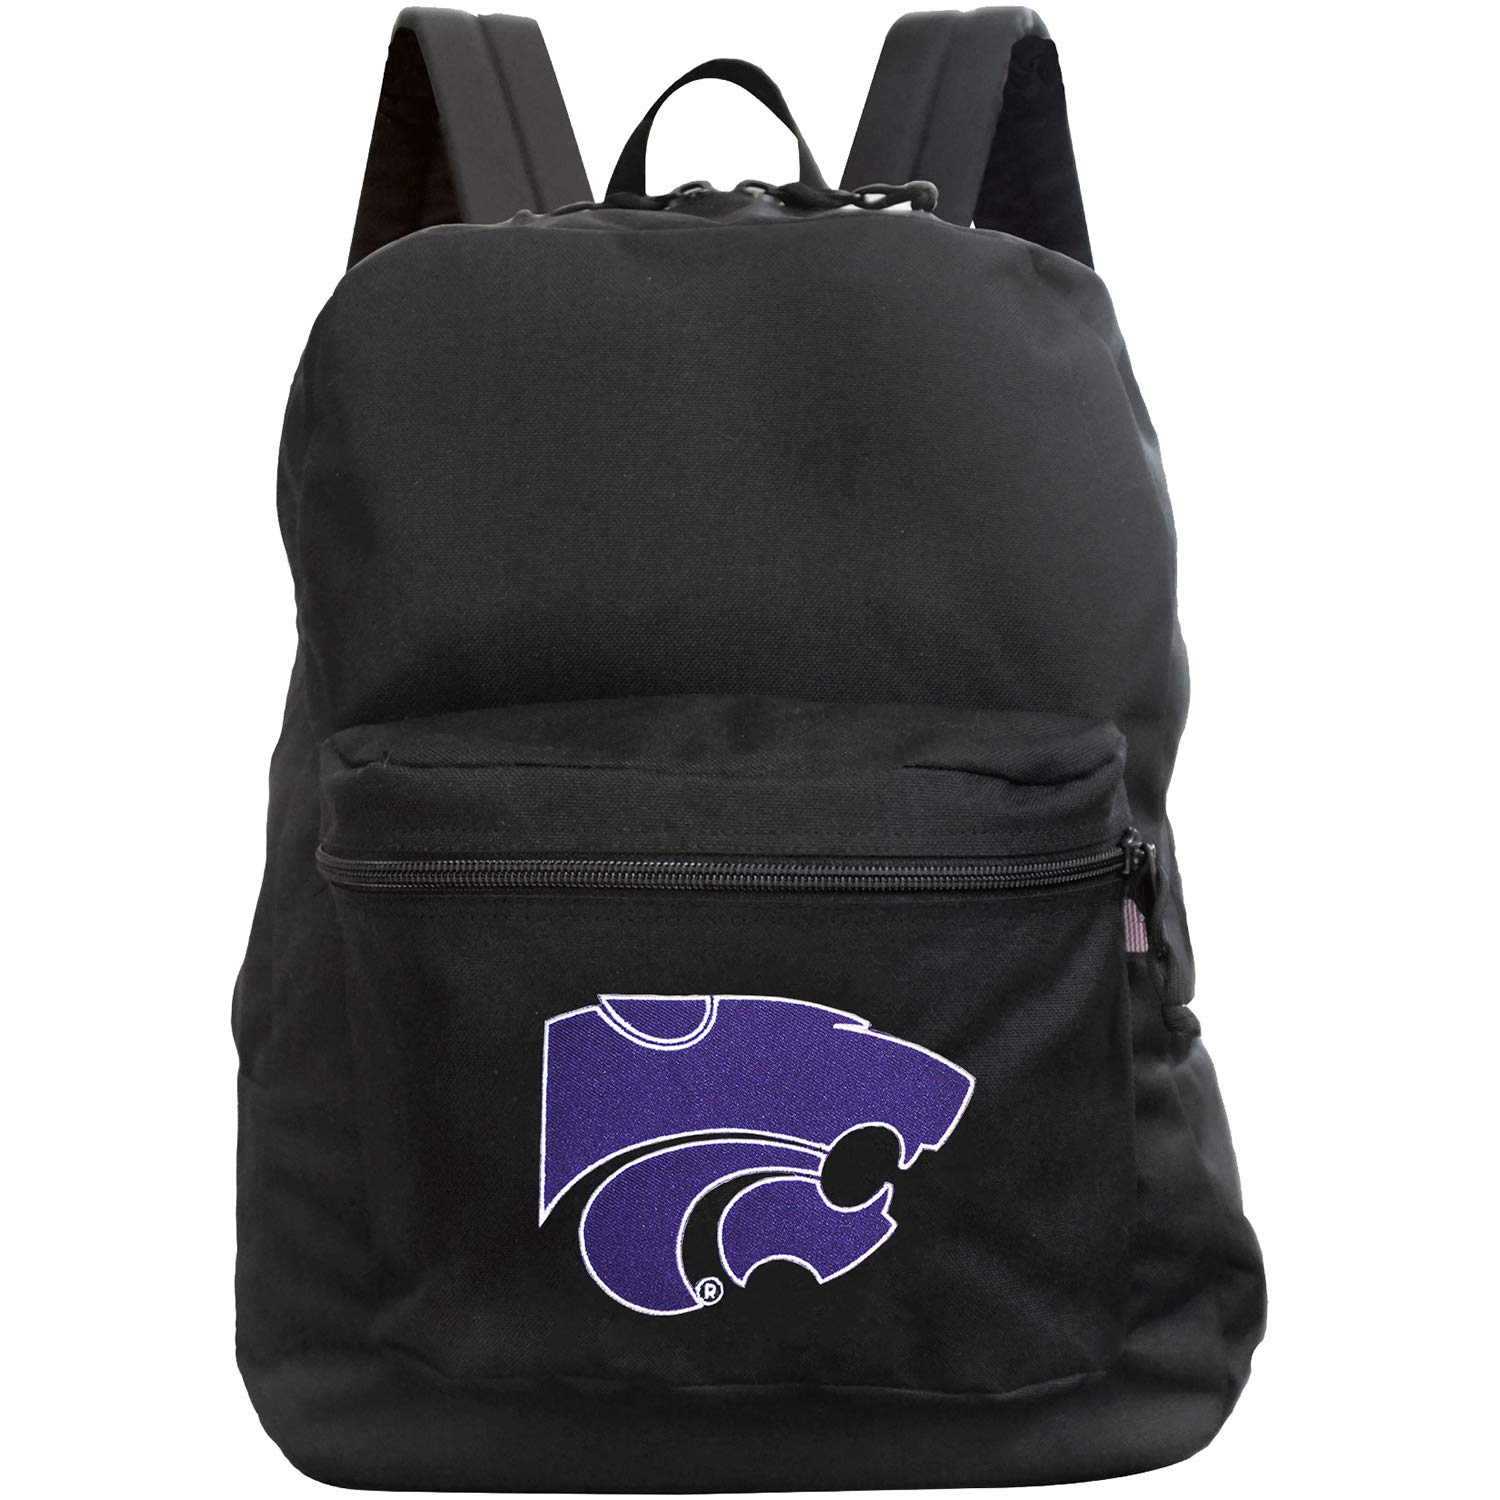 Black 16-inches NCAA Made in The USA Premium Backpack